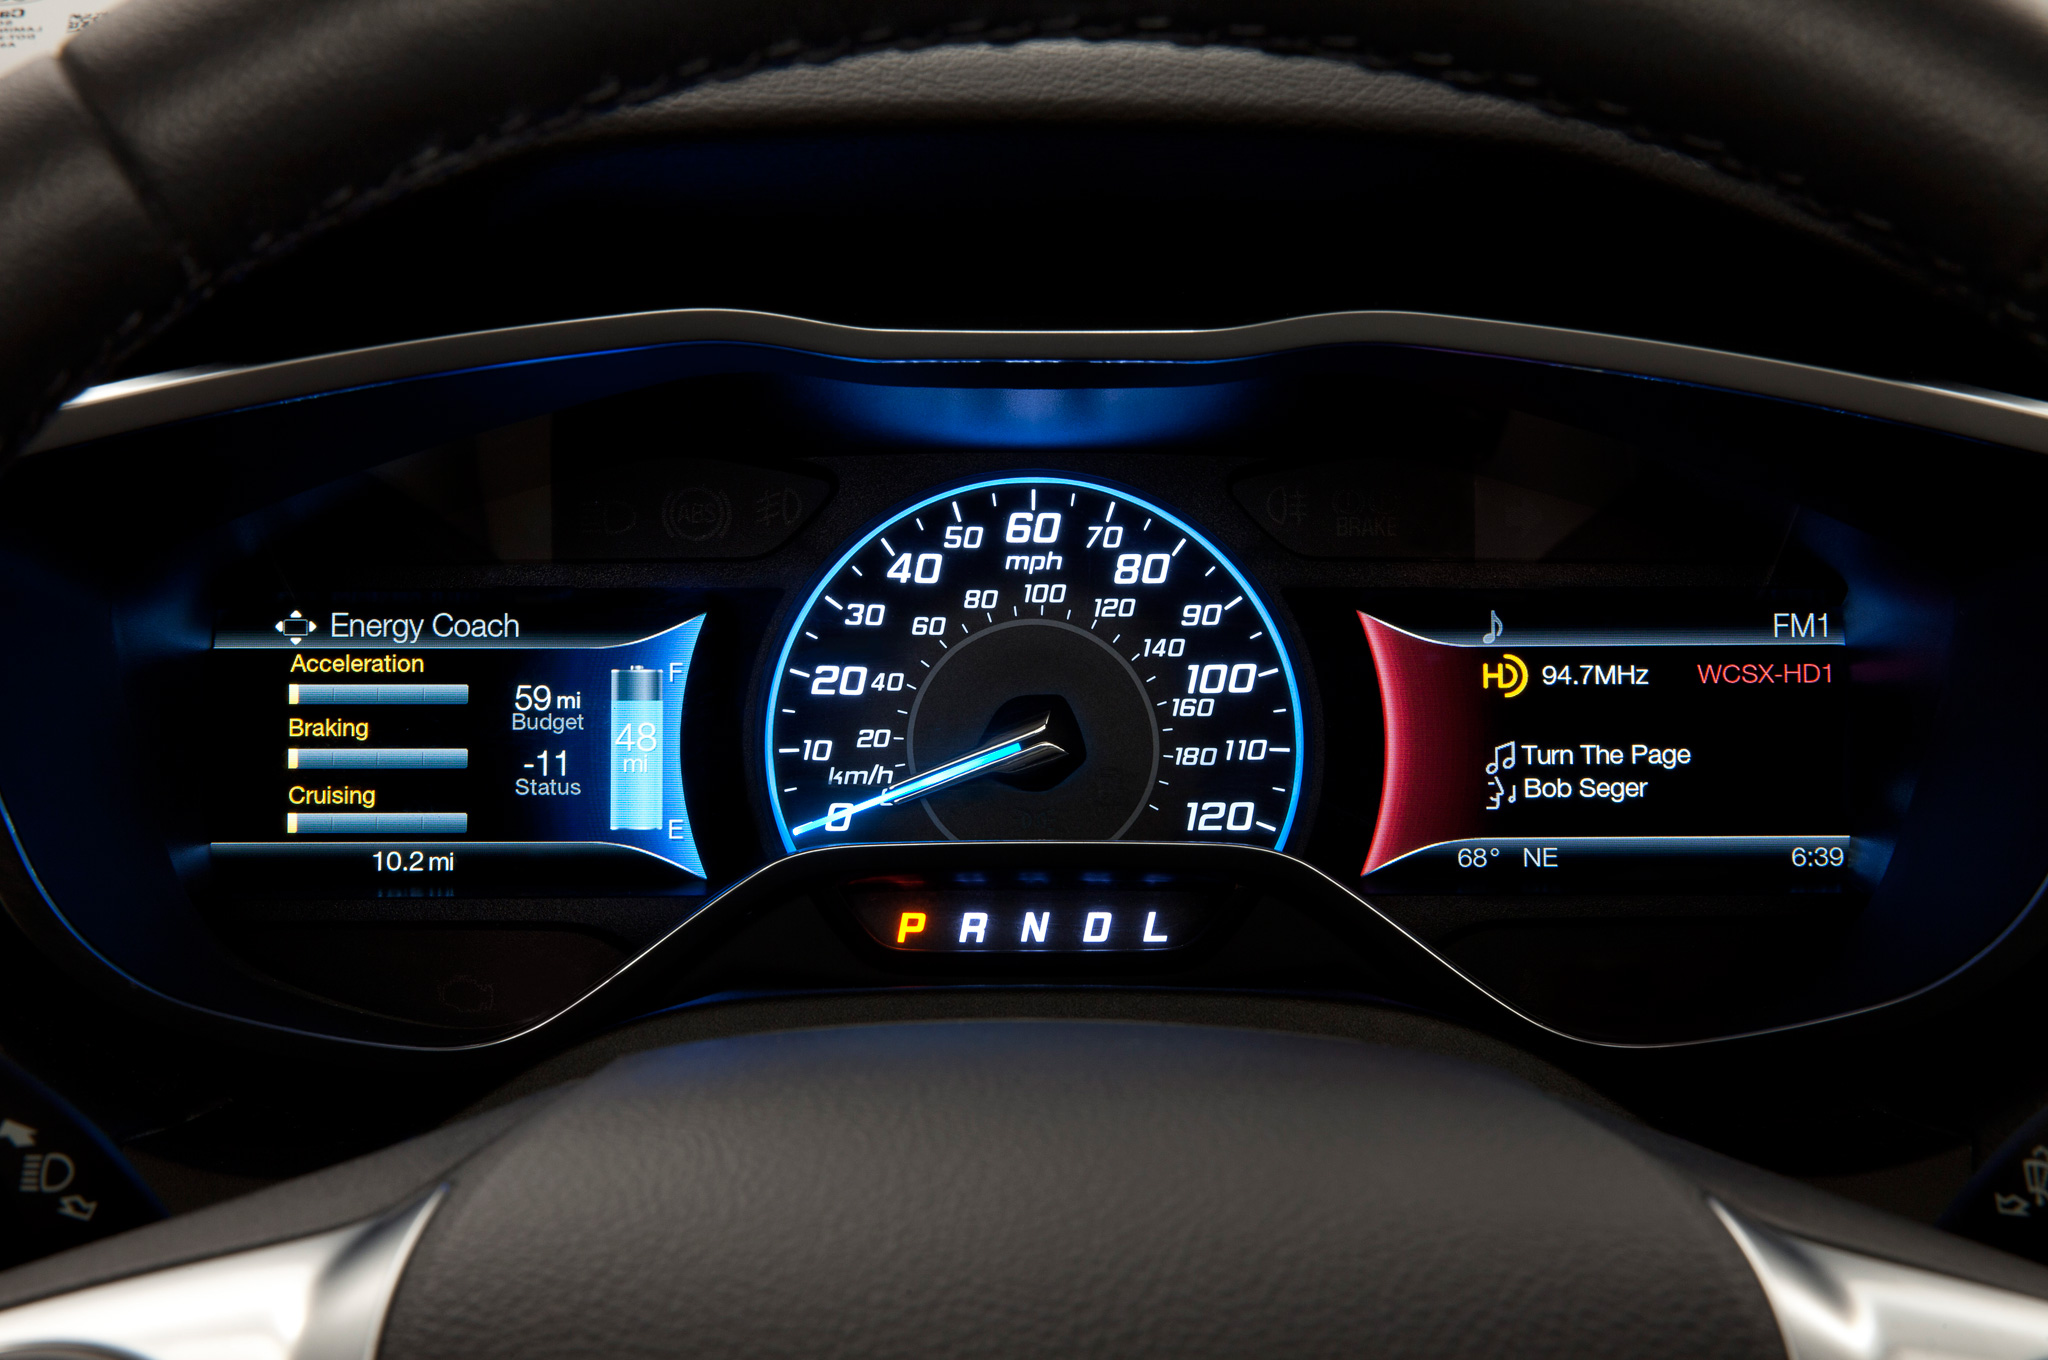 awesome-design-of-the-modern-speedometer-with-digital-ideas-as-the-ford-focus-facelift-2015-interior-ideas